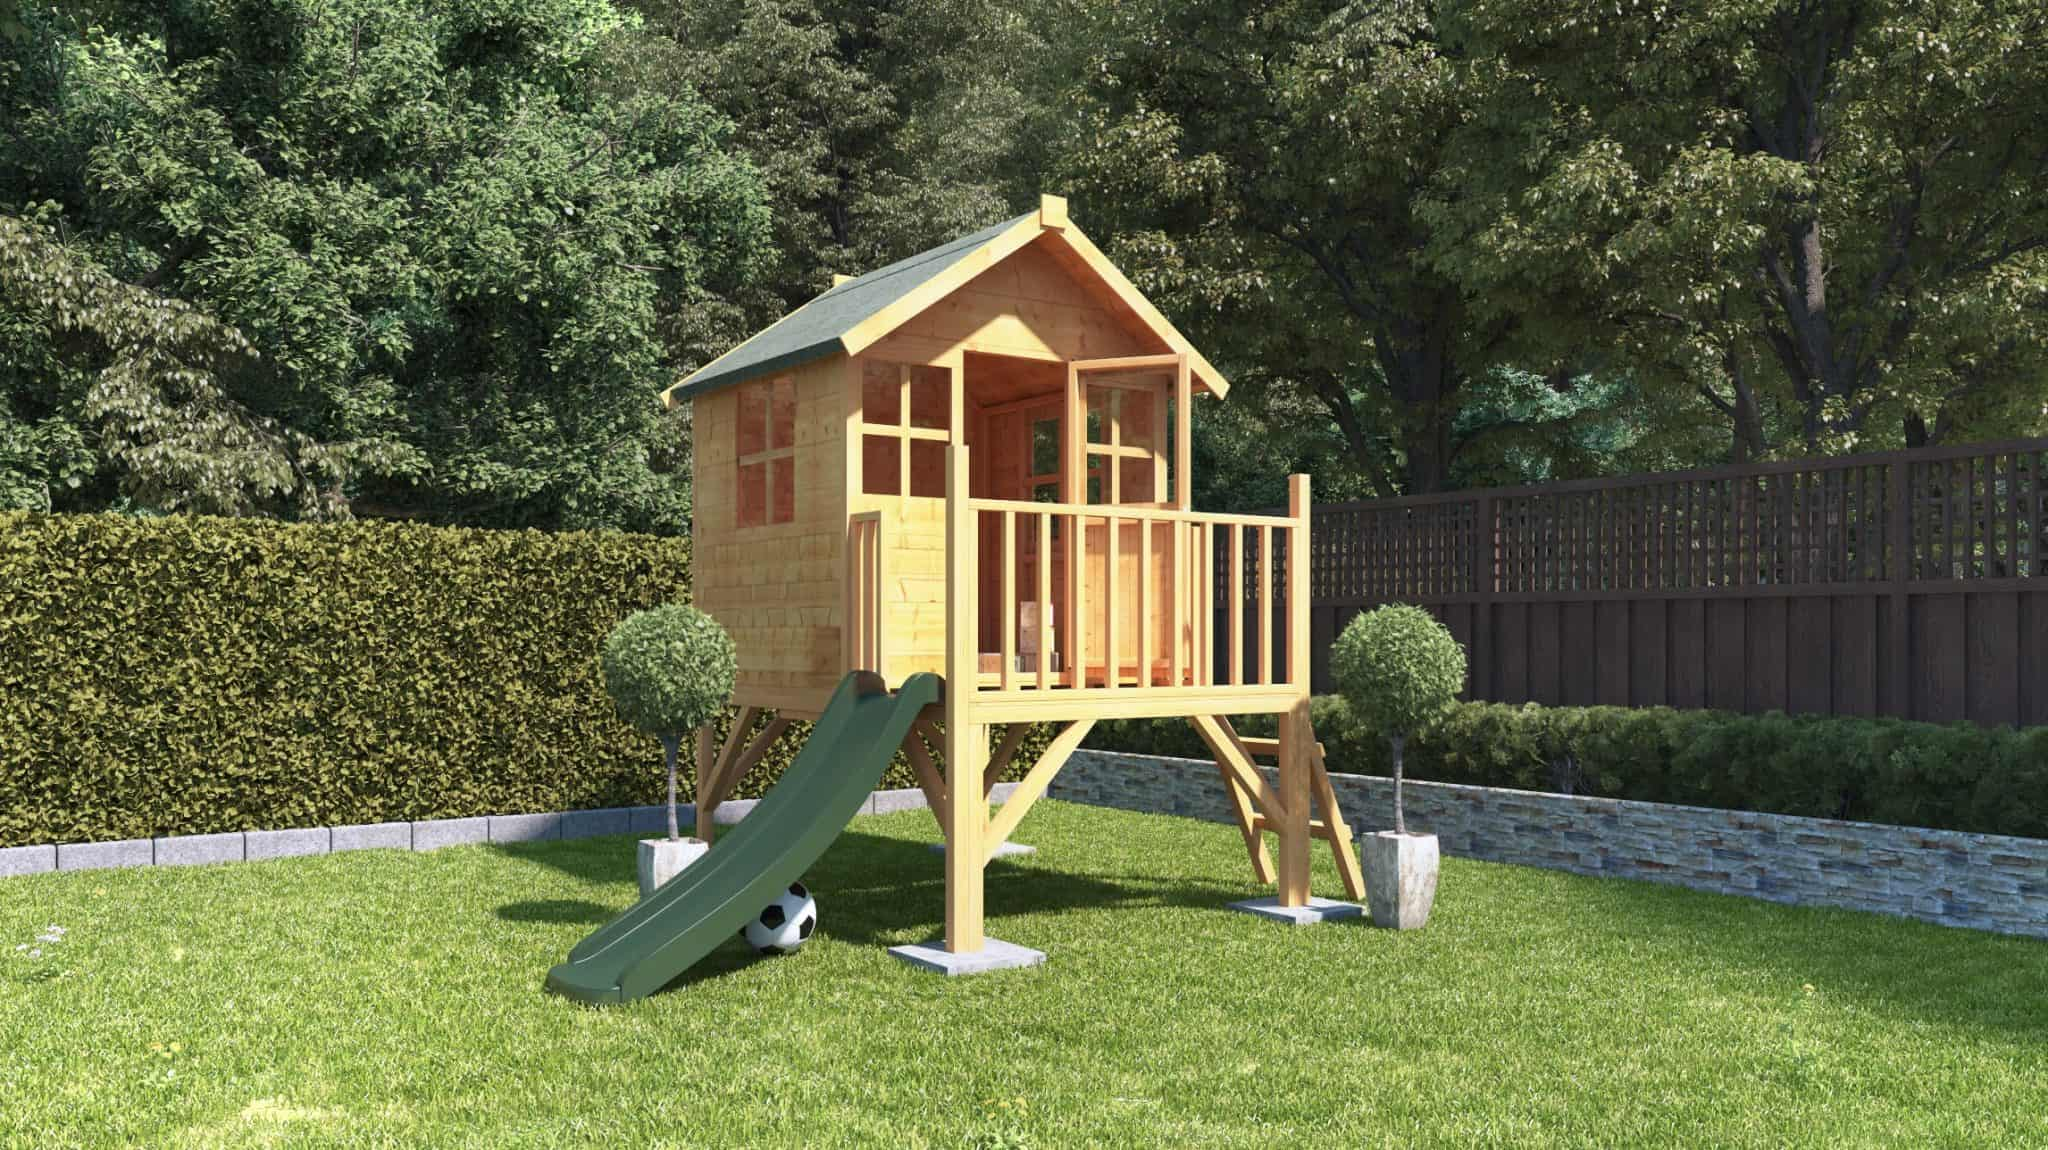 BillyOh Bunny Max Tower timber tongue and groove playhouse with slide on grass